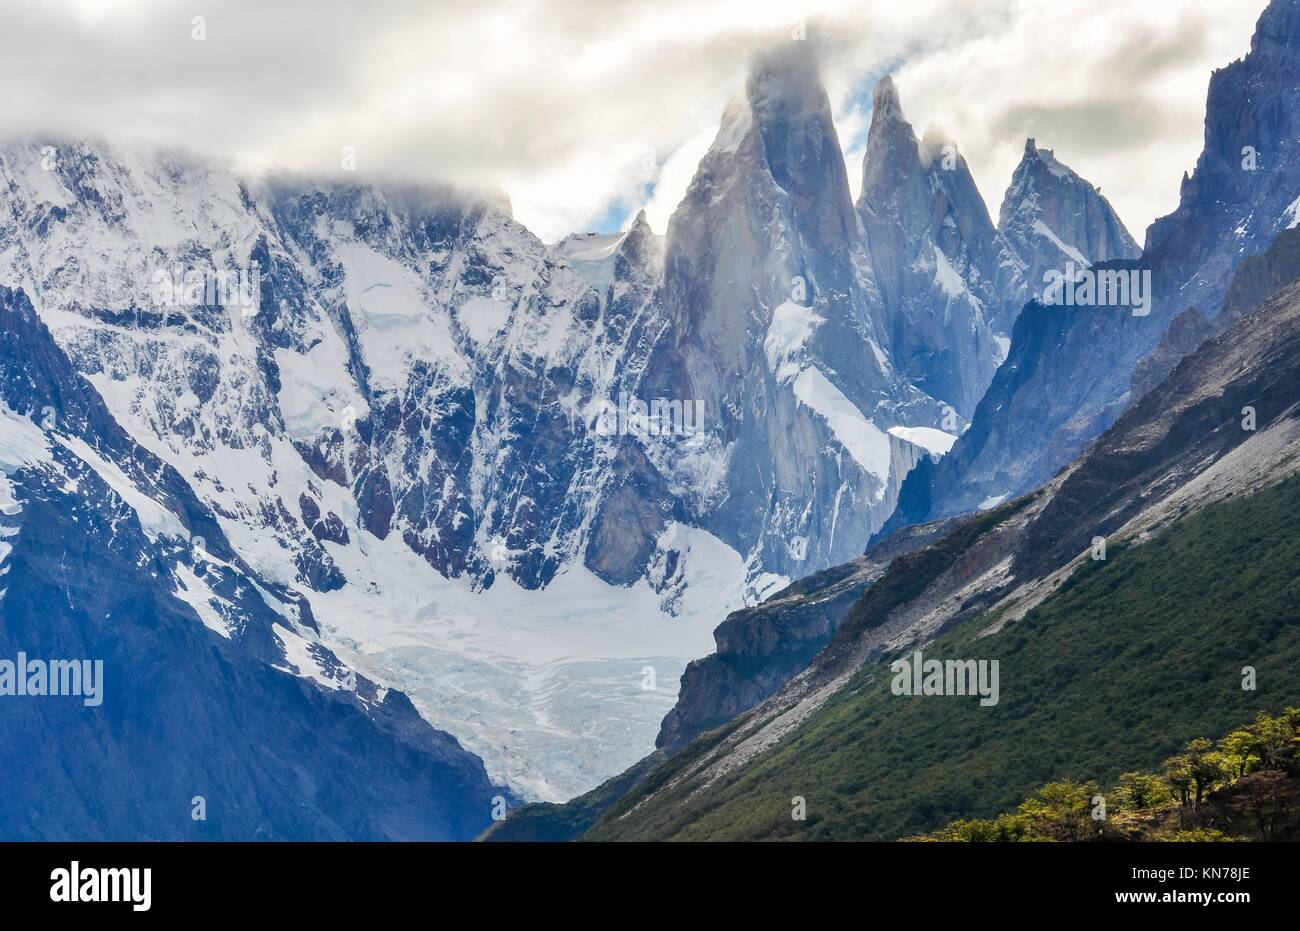 The view of the peaks, Cerro Torre Walk, El Chalten, Patagonia, Argentina. - Stock Image